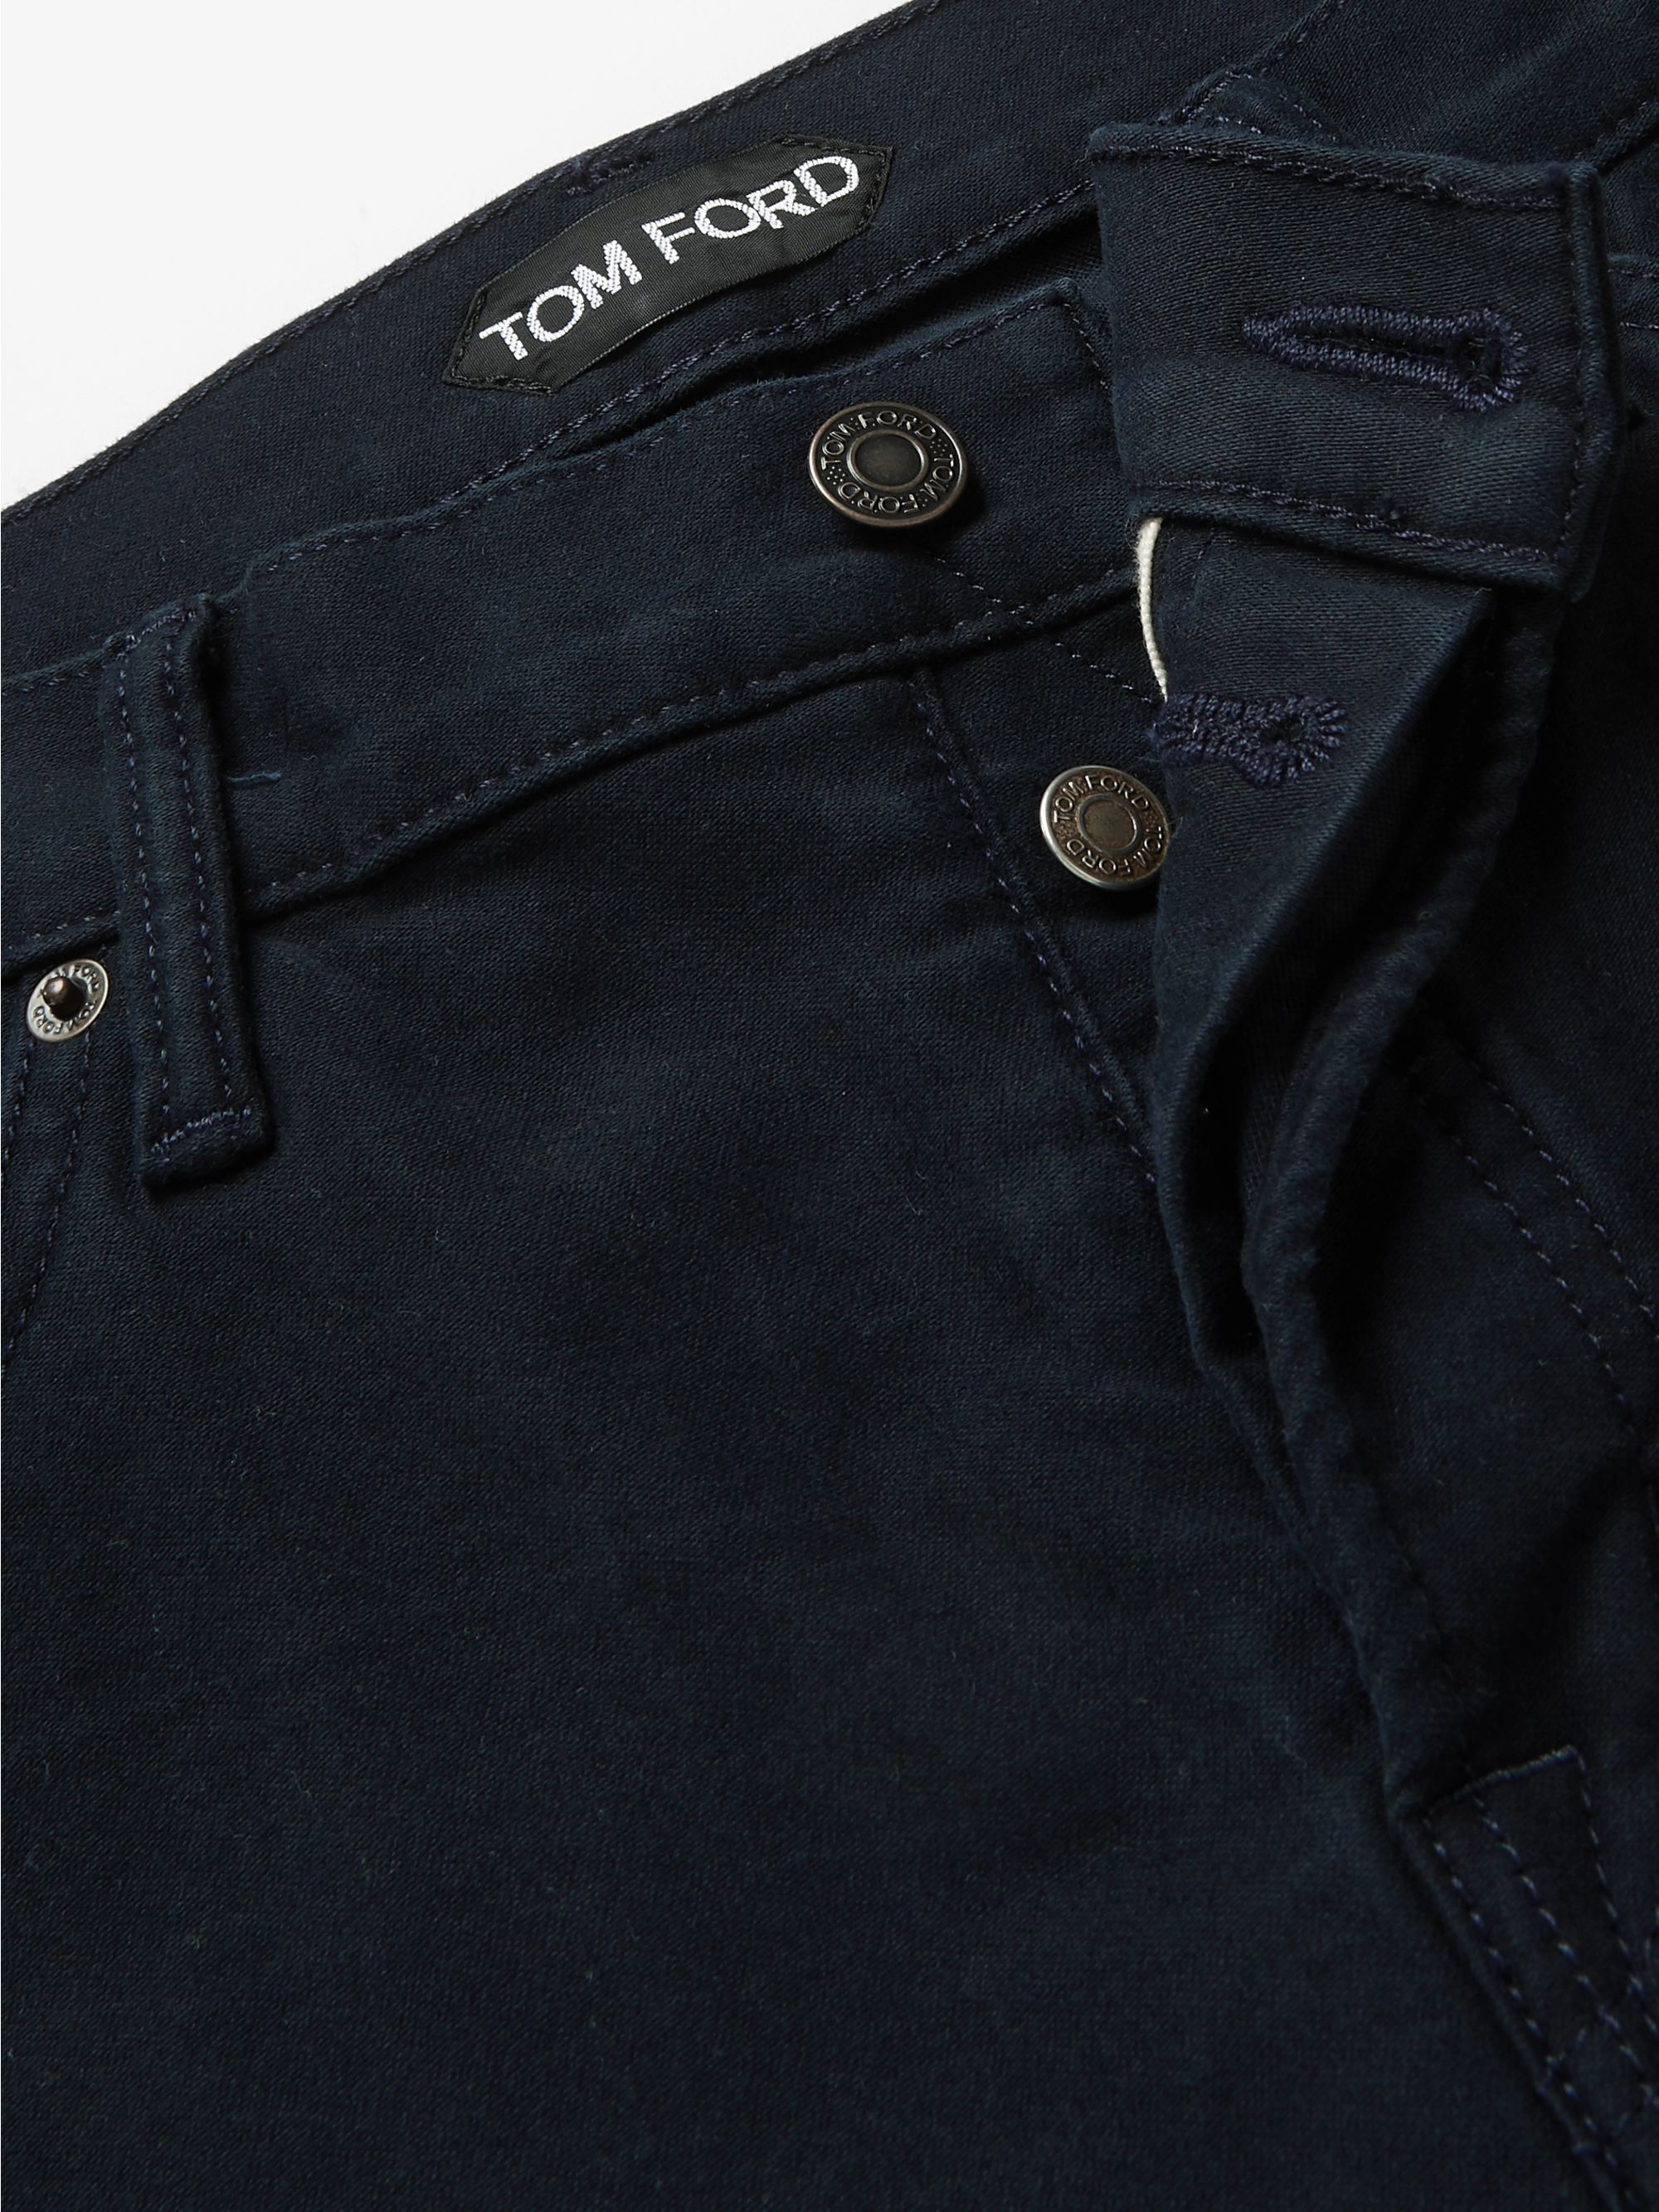 TOM FORD Navy Slim-Fit Cotton-Blend Moleskin Trousers